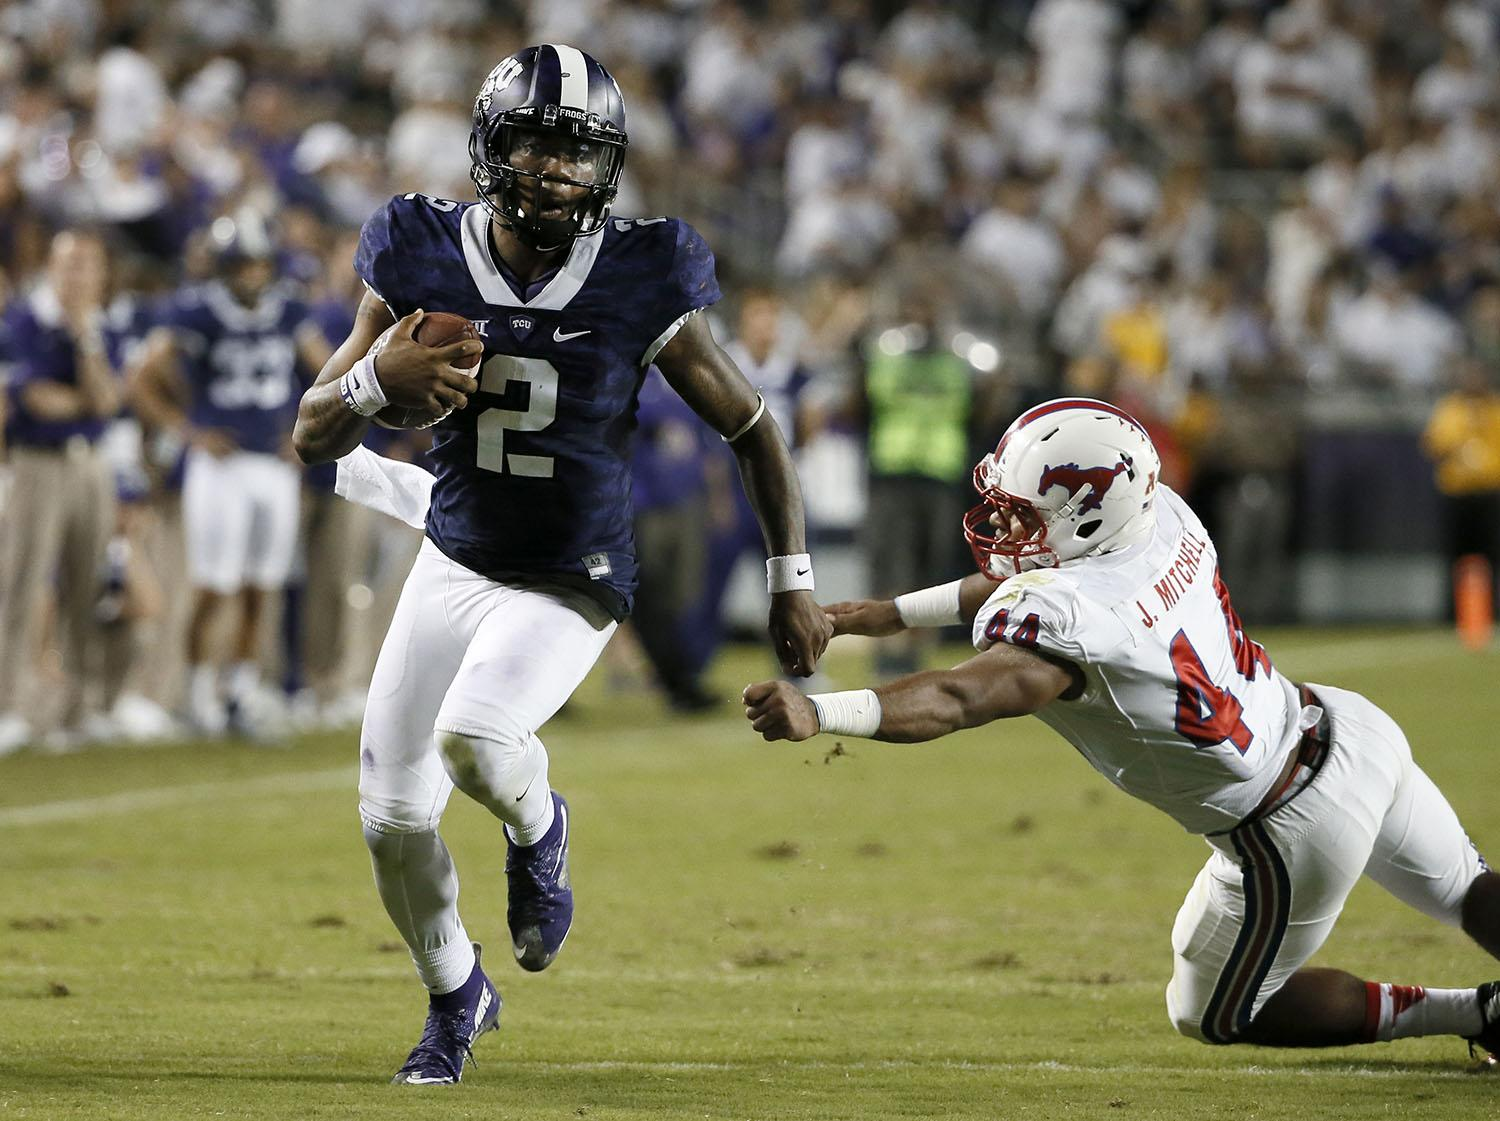 TCU quarterback Trevone Boykin (2) escapes a tackle attempt by SMU's Jackson Mitchell (44) in the second half of an NCAA college football game Saturday, Sept. 19, 2015, in Fort Worth, Texas. Boykin threw for 454 yards and five touchdowns and added a highlight scoring run when he ducked out of a sack as third-ranked TCU held on for a 56-37 victory over SMU on Saturday night. (AP Photo/Tony Gutierrez)